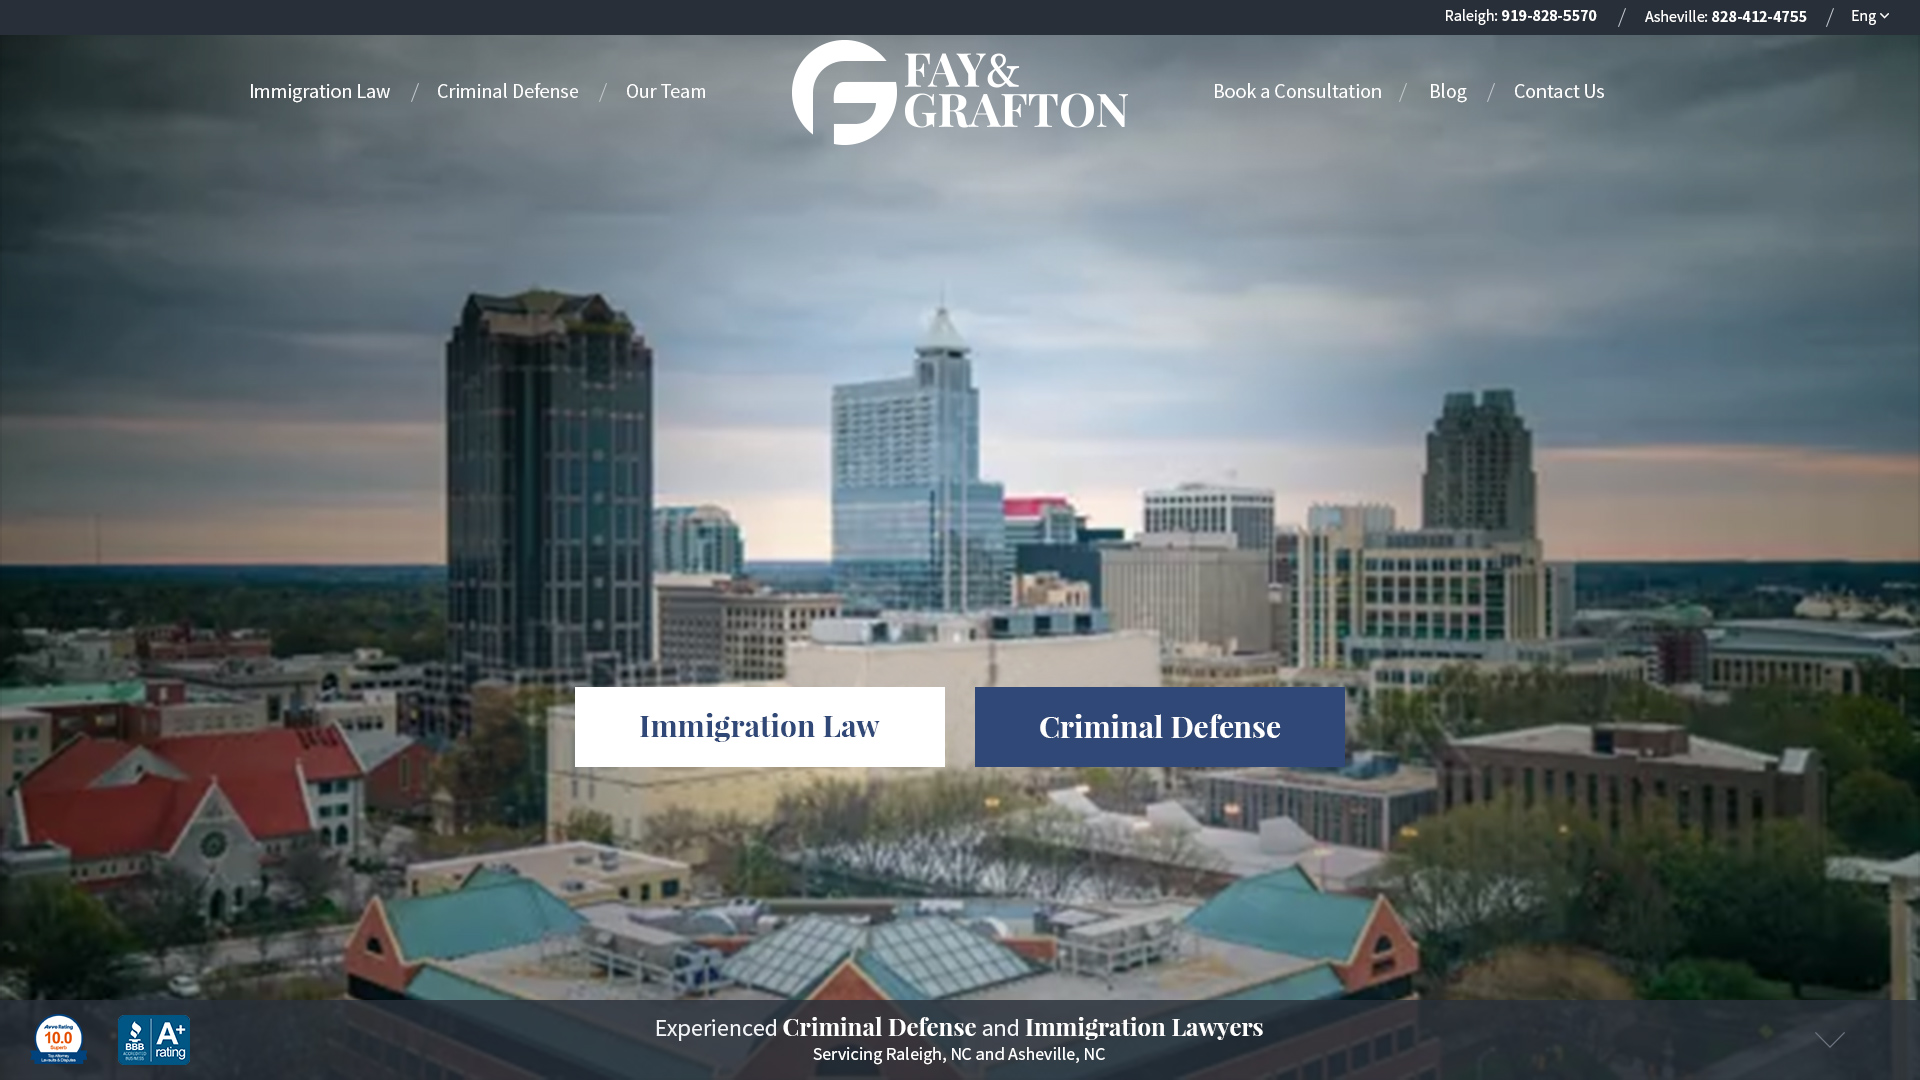 Fay & Grafton Website Design Preview